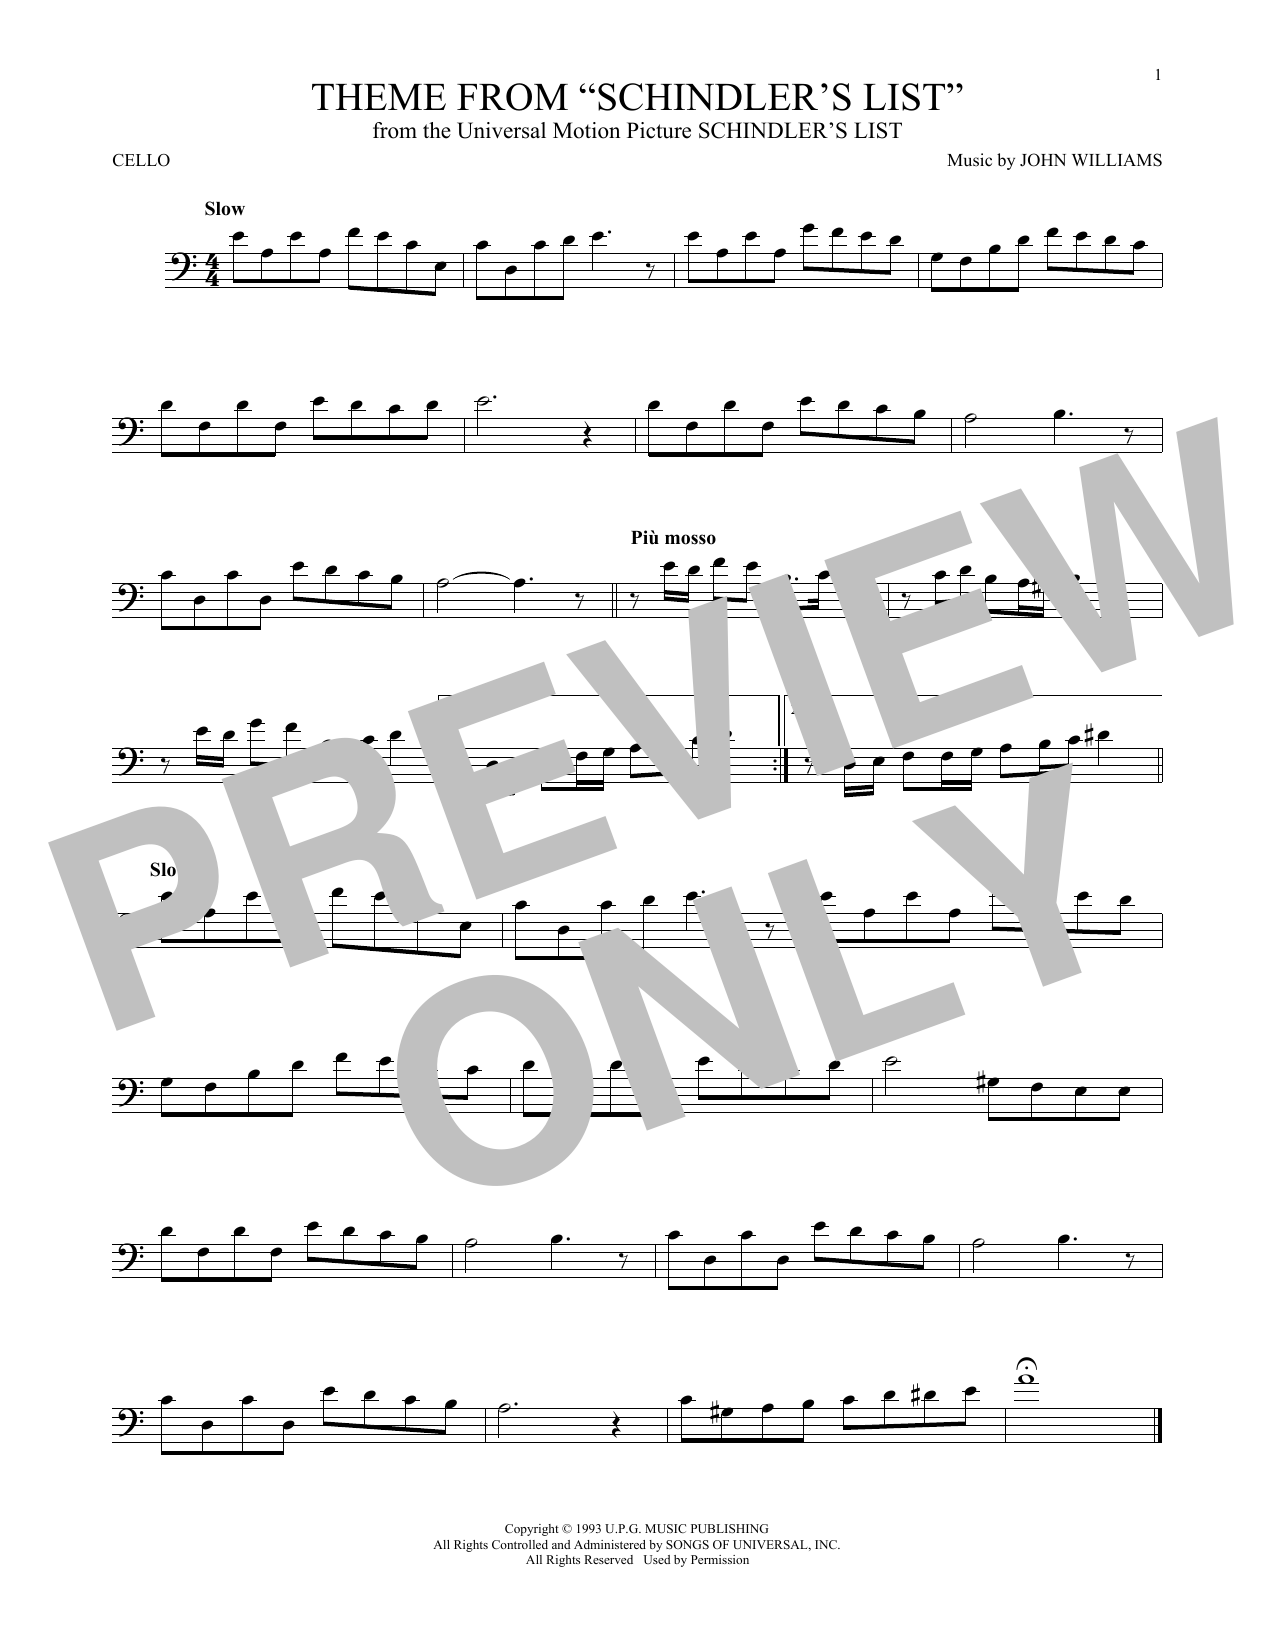 Theme From Schindler's List (Cello Solo)